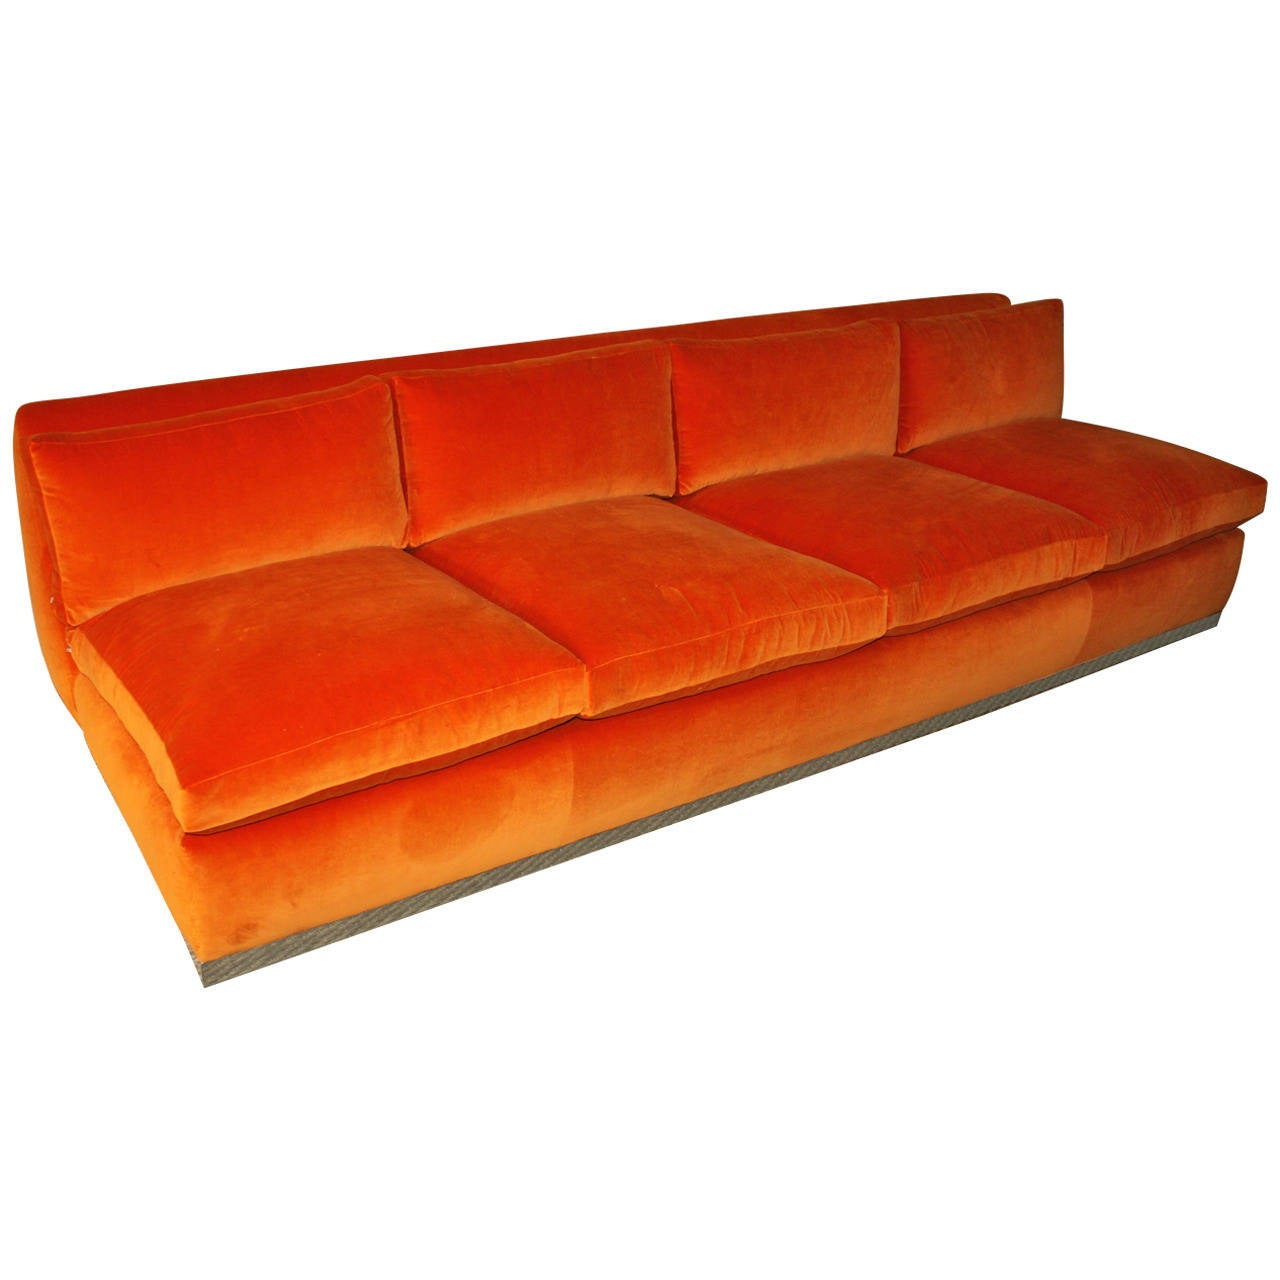 milo baughman orange velvet sofa at 1stdibs. Black Bedroom Furniture Sets. Home Design Ideas